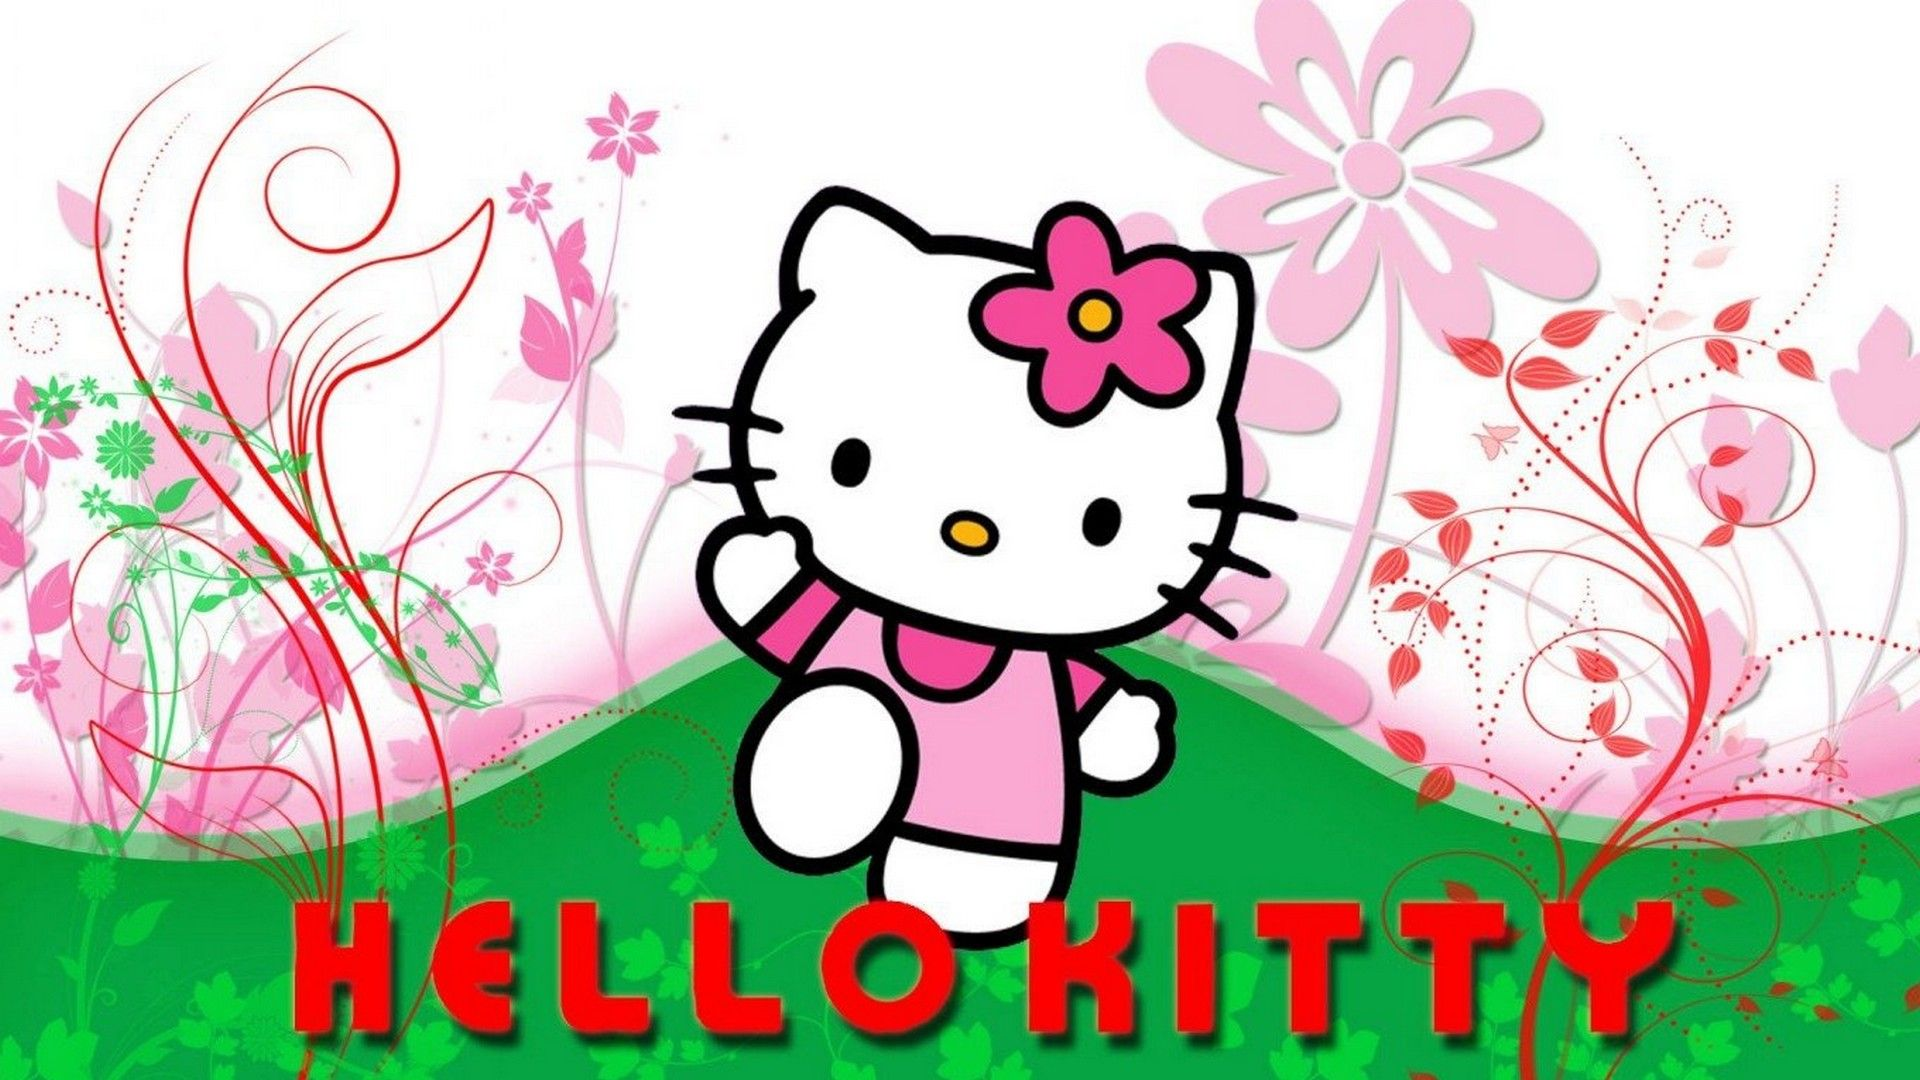 Wallpaper Hello Kitty Images Best Hd Wallpapers Hello Kitty Wallpaper Hd Hello Kitty Wallpaper Hello Kitty